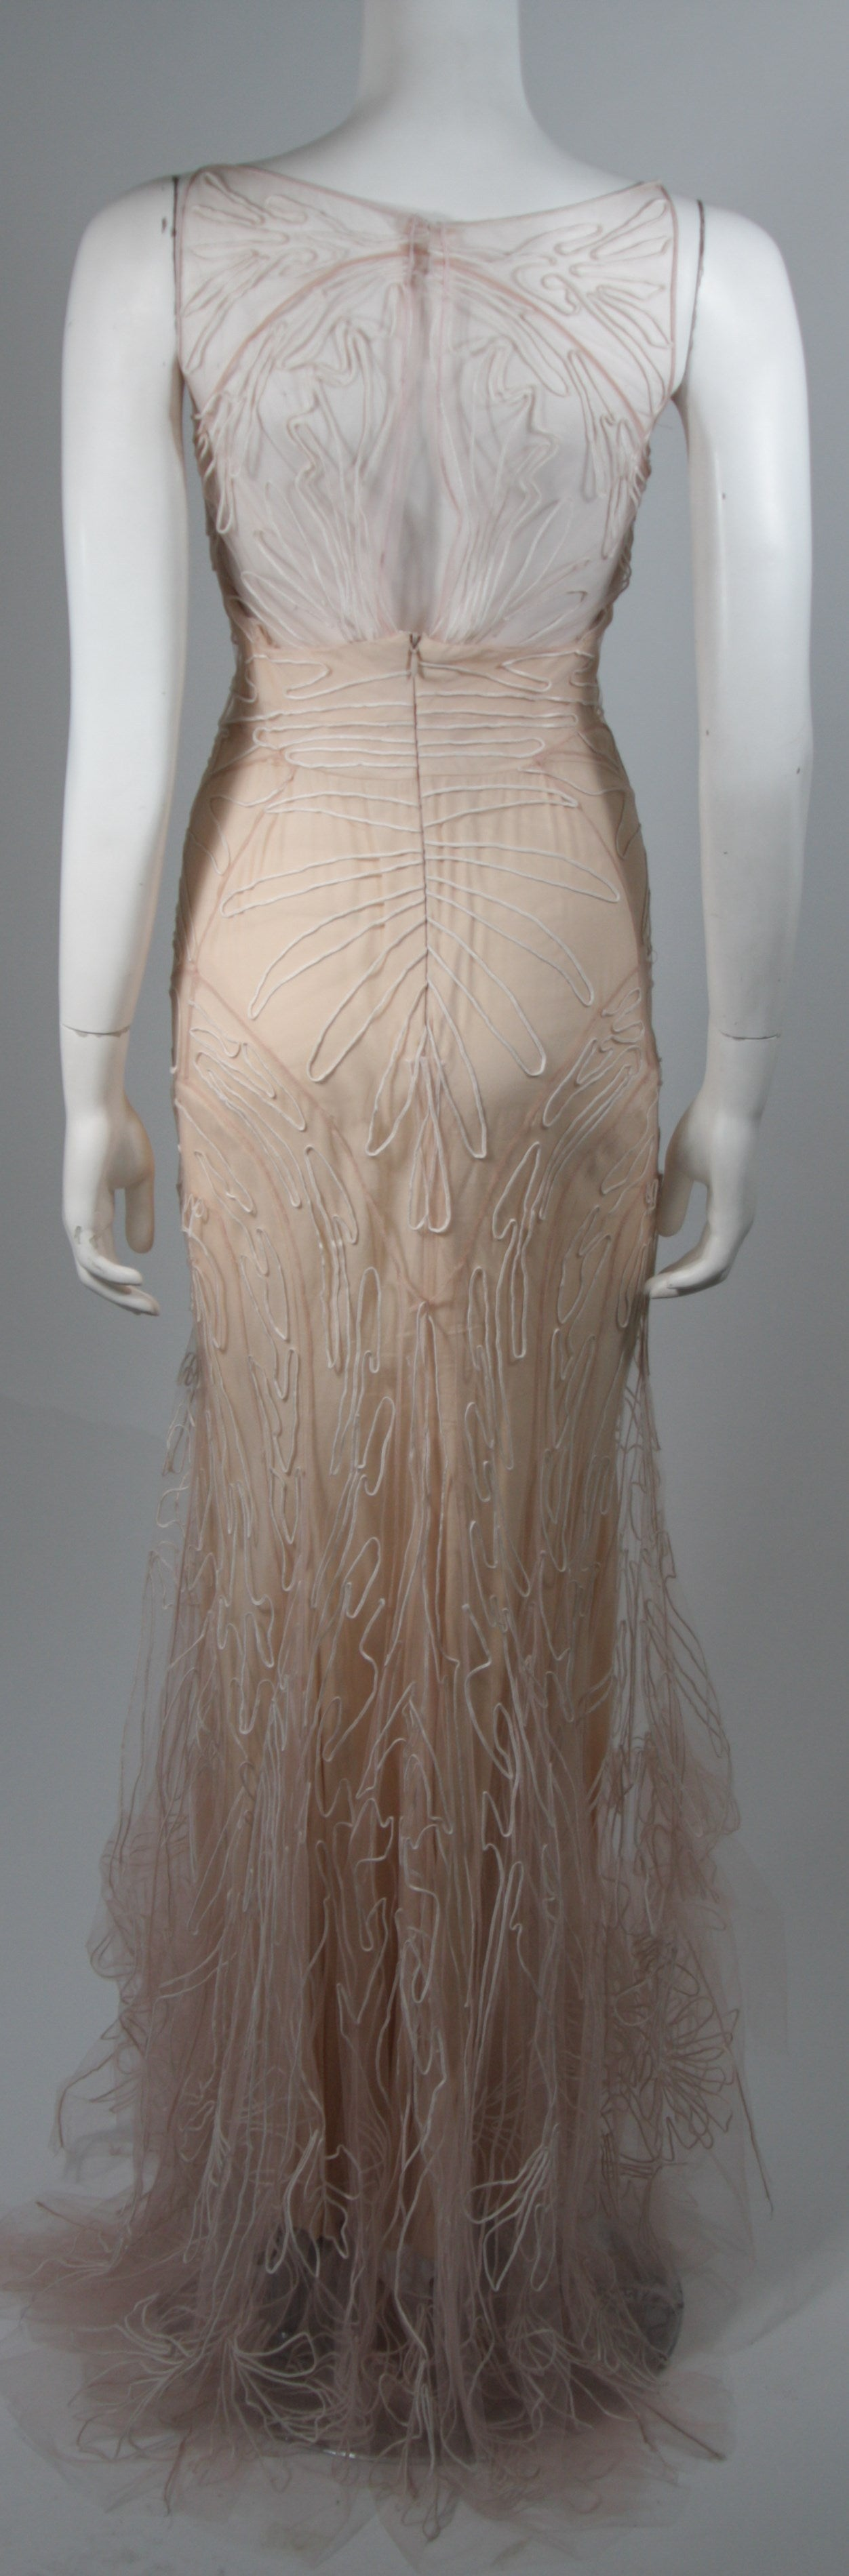 Zac Posen Embroidered Blush Silk Mesh Wedding Gown with Veil Size Small 9